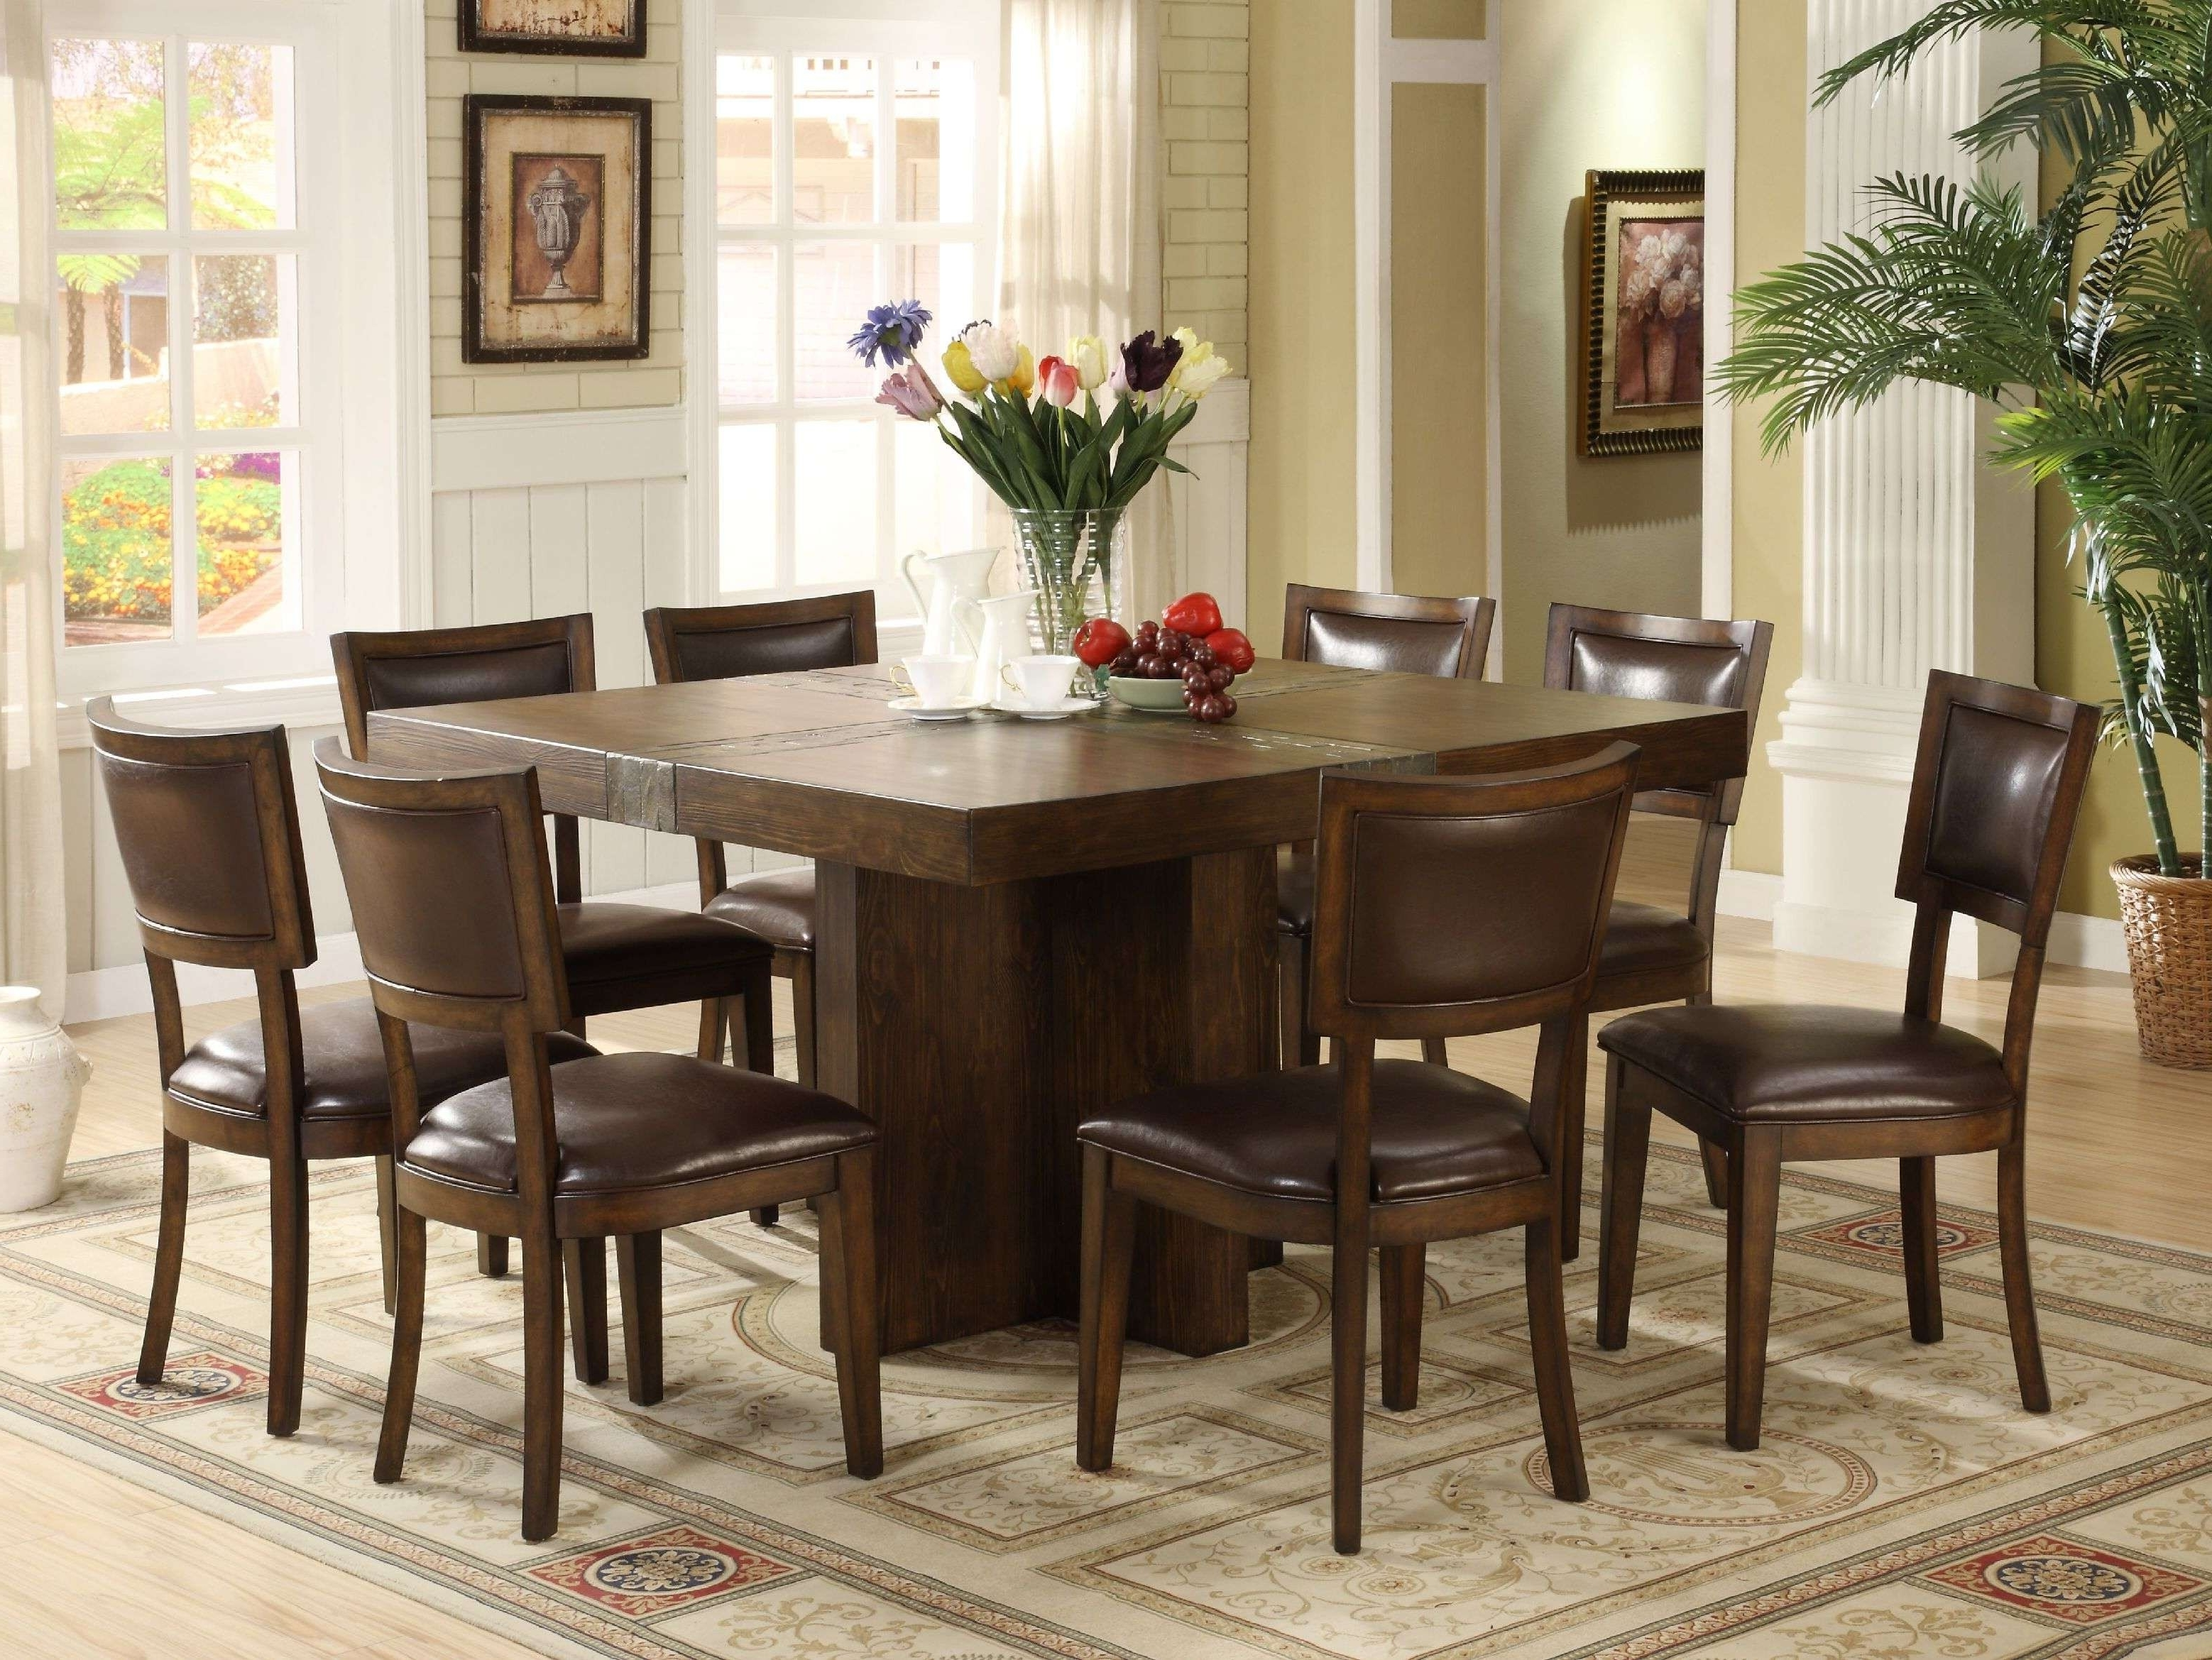 10 Seater Dining Table And Chairs Beautiful Best 8 Seater Dining Pertaining To Trendy 8 Seater Black Dining Tables (Gallery 14 of 25)